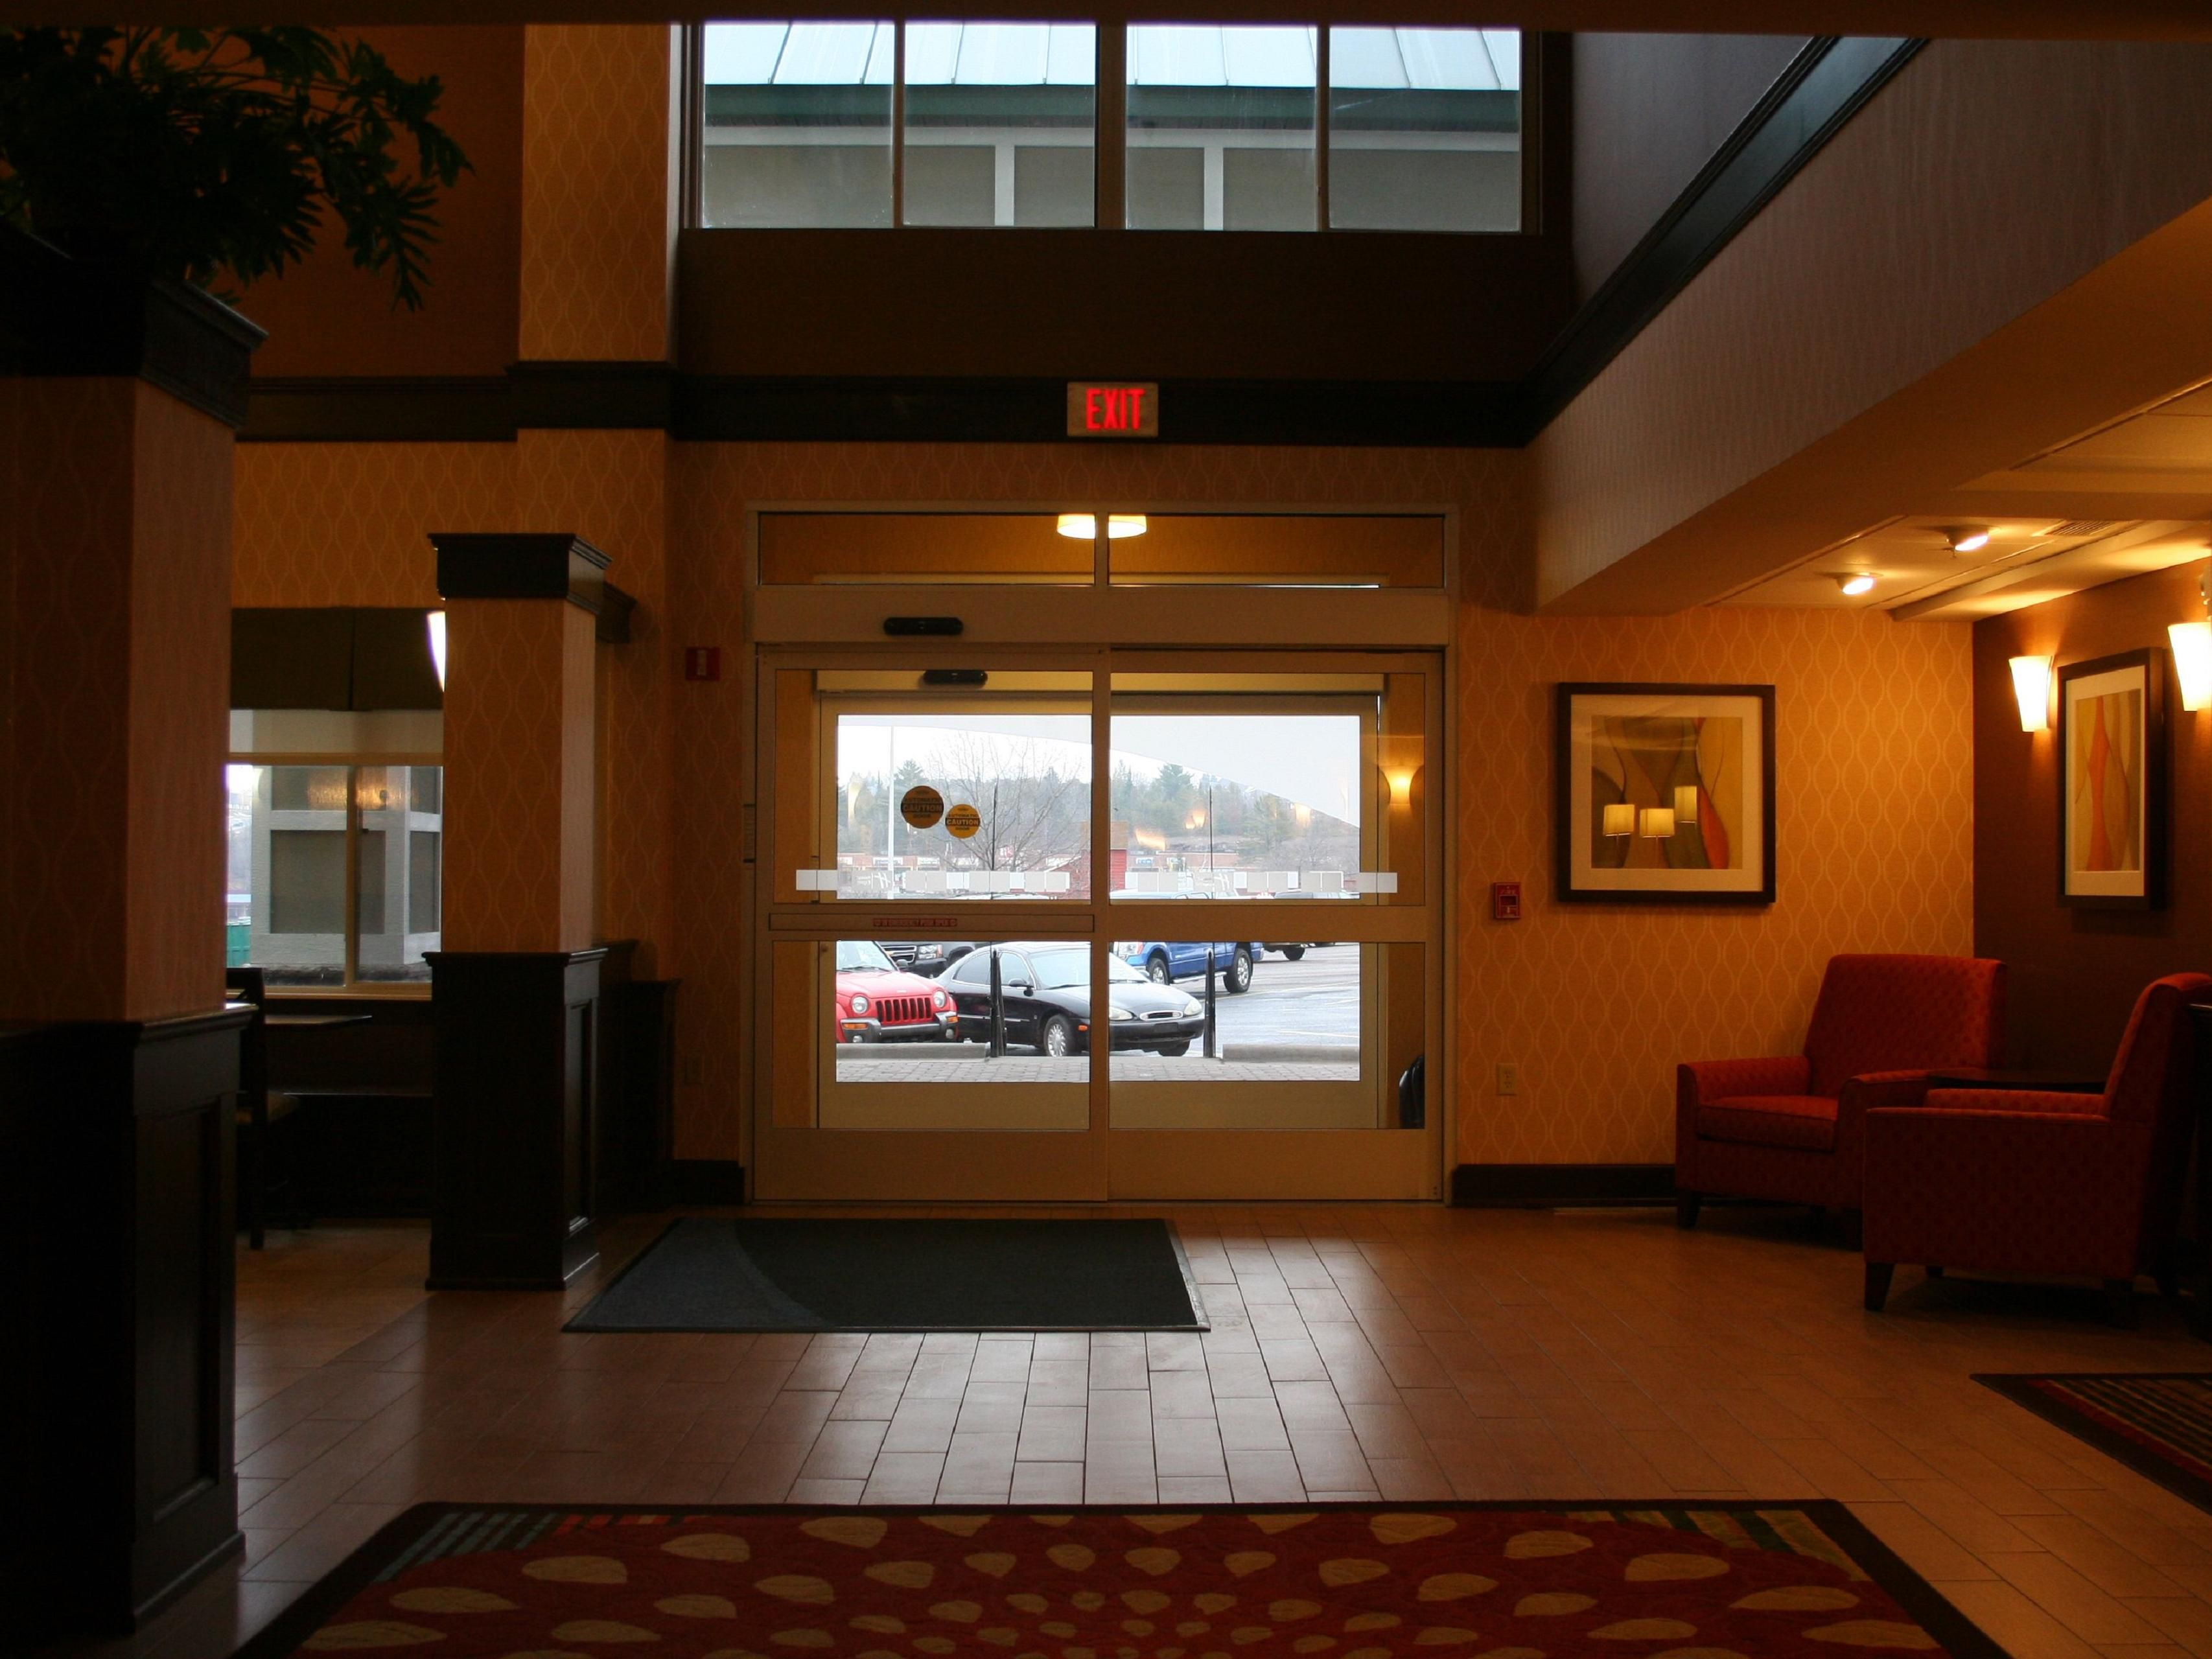 Holiday Inn Express Lobby Entrance